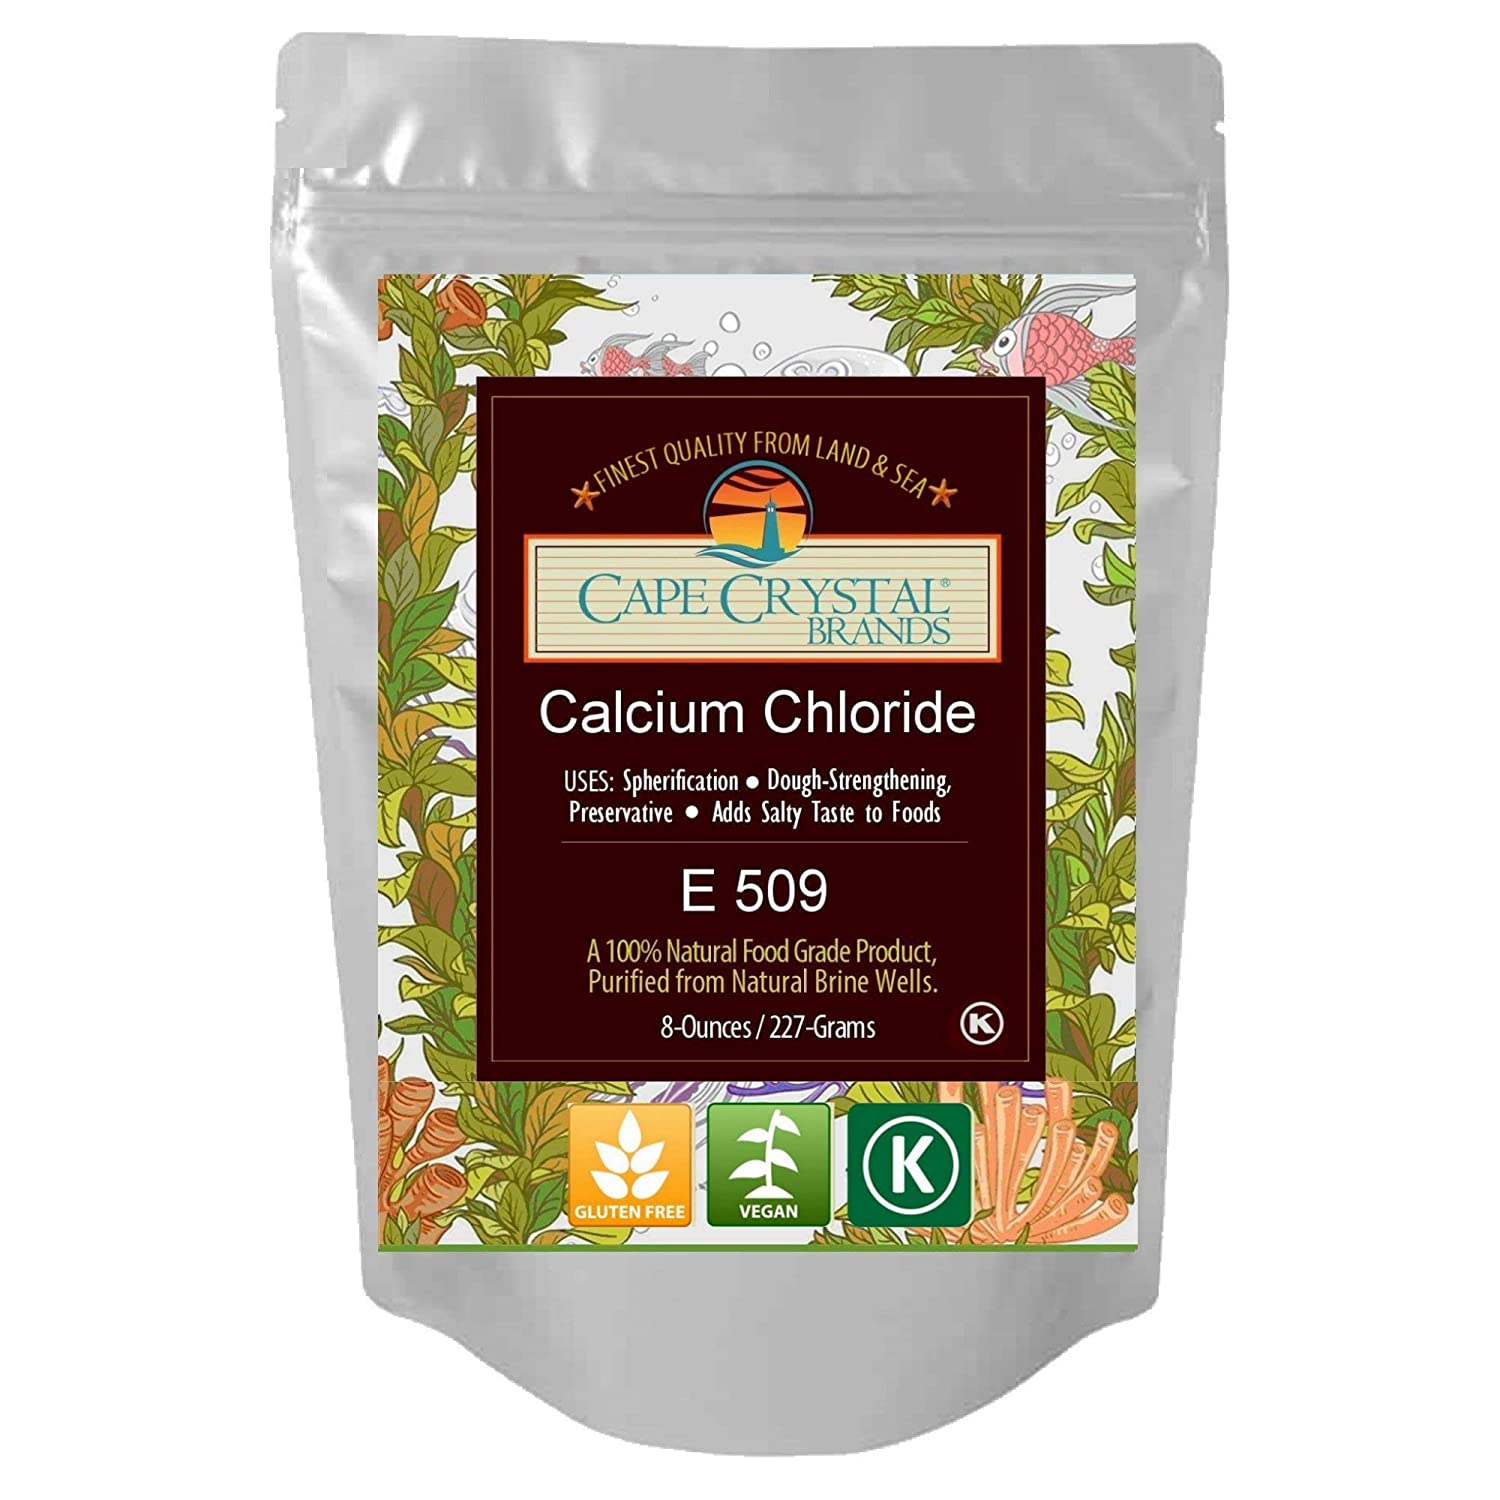 Calcium Chloride by Cape Crystal Brands | (K) Kosher Certified |2-oz / 8-oz / 14-oz (8-oz.)